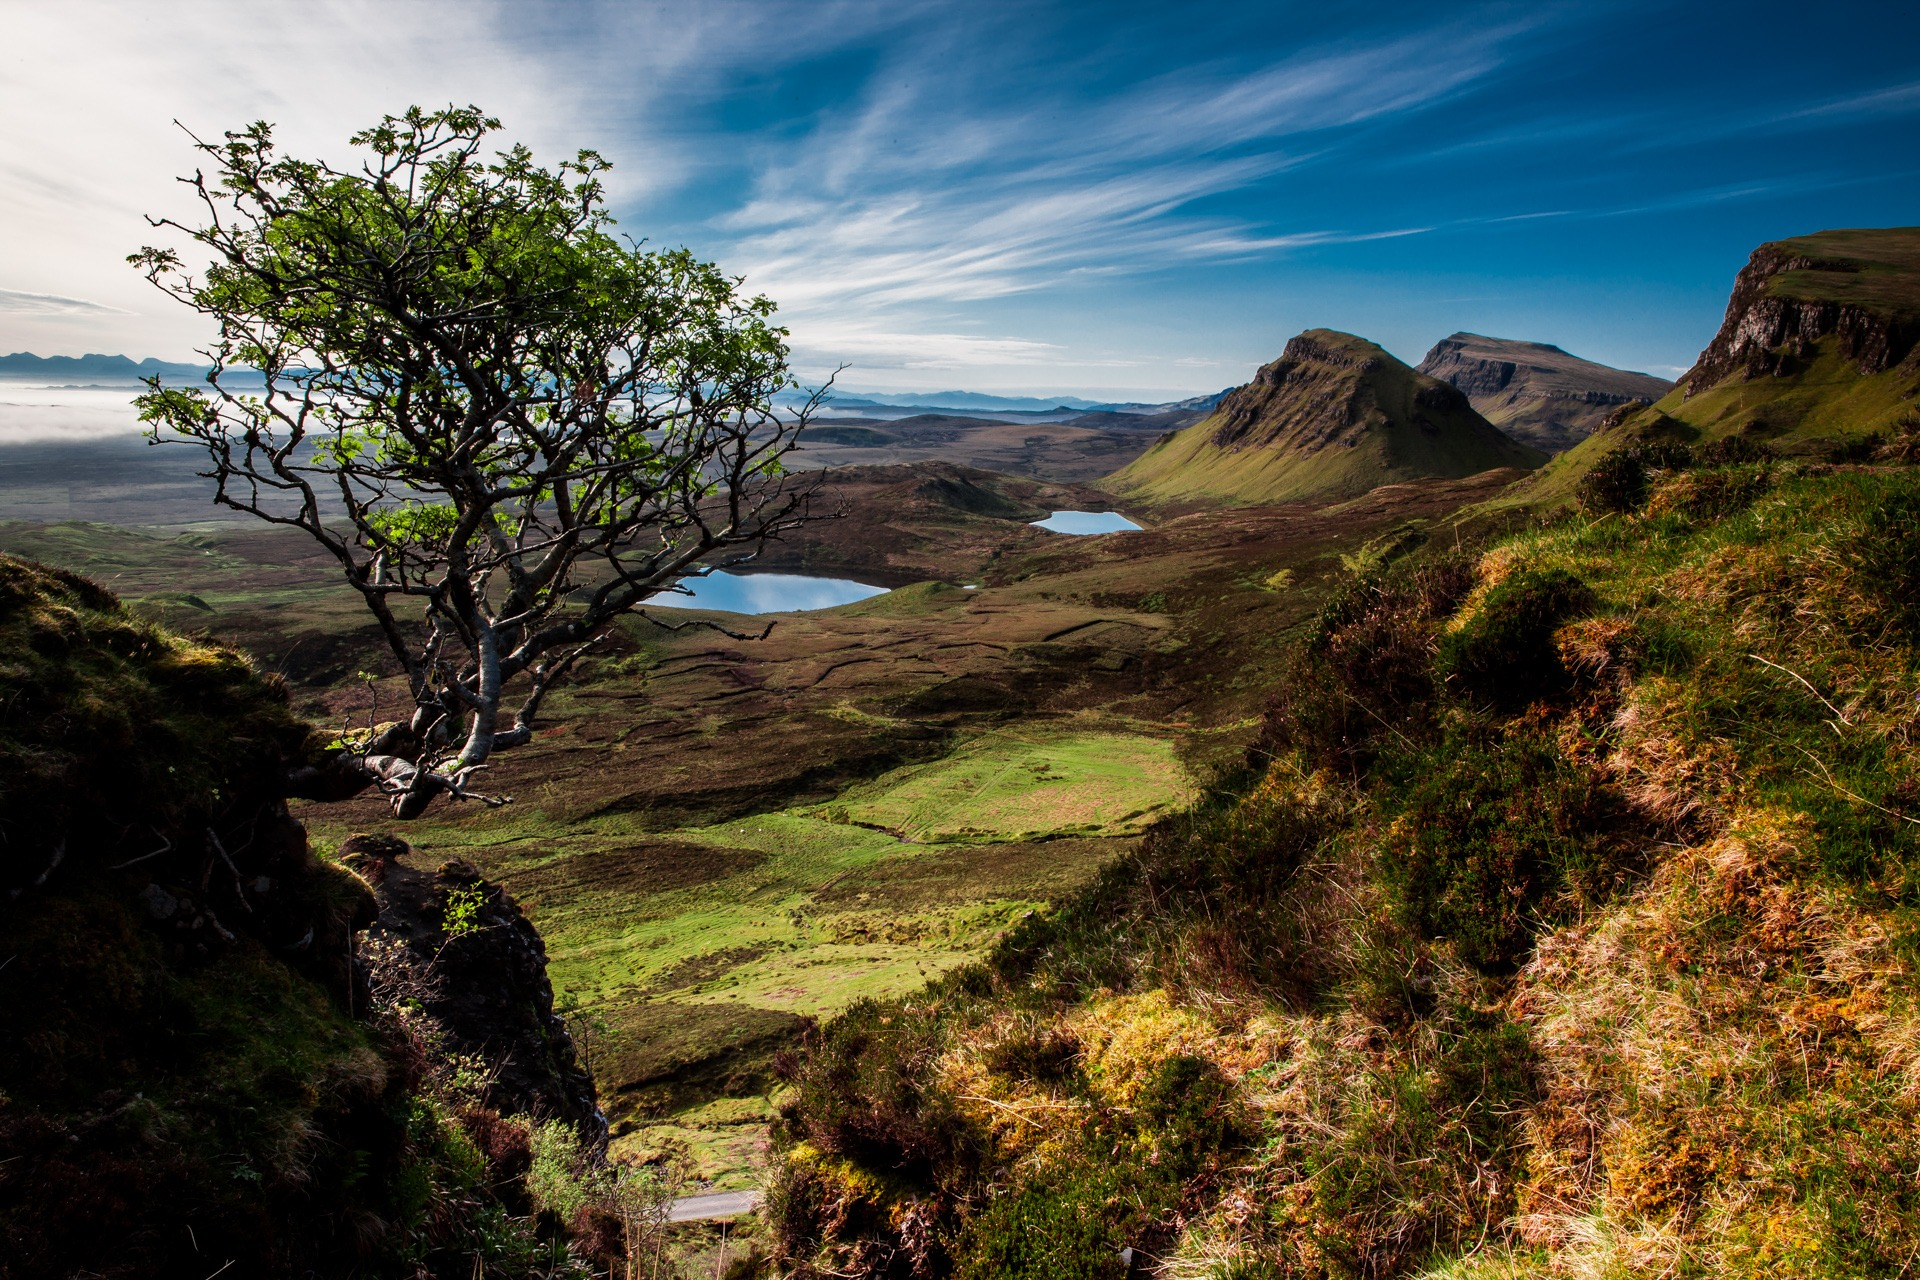 78503 free wallpaper 1080x2400 for phone, download images Nature, Trees, Mountains, Lake, Scotland 1080x2400 for mobile